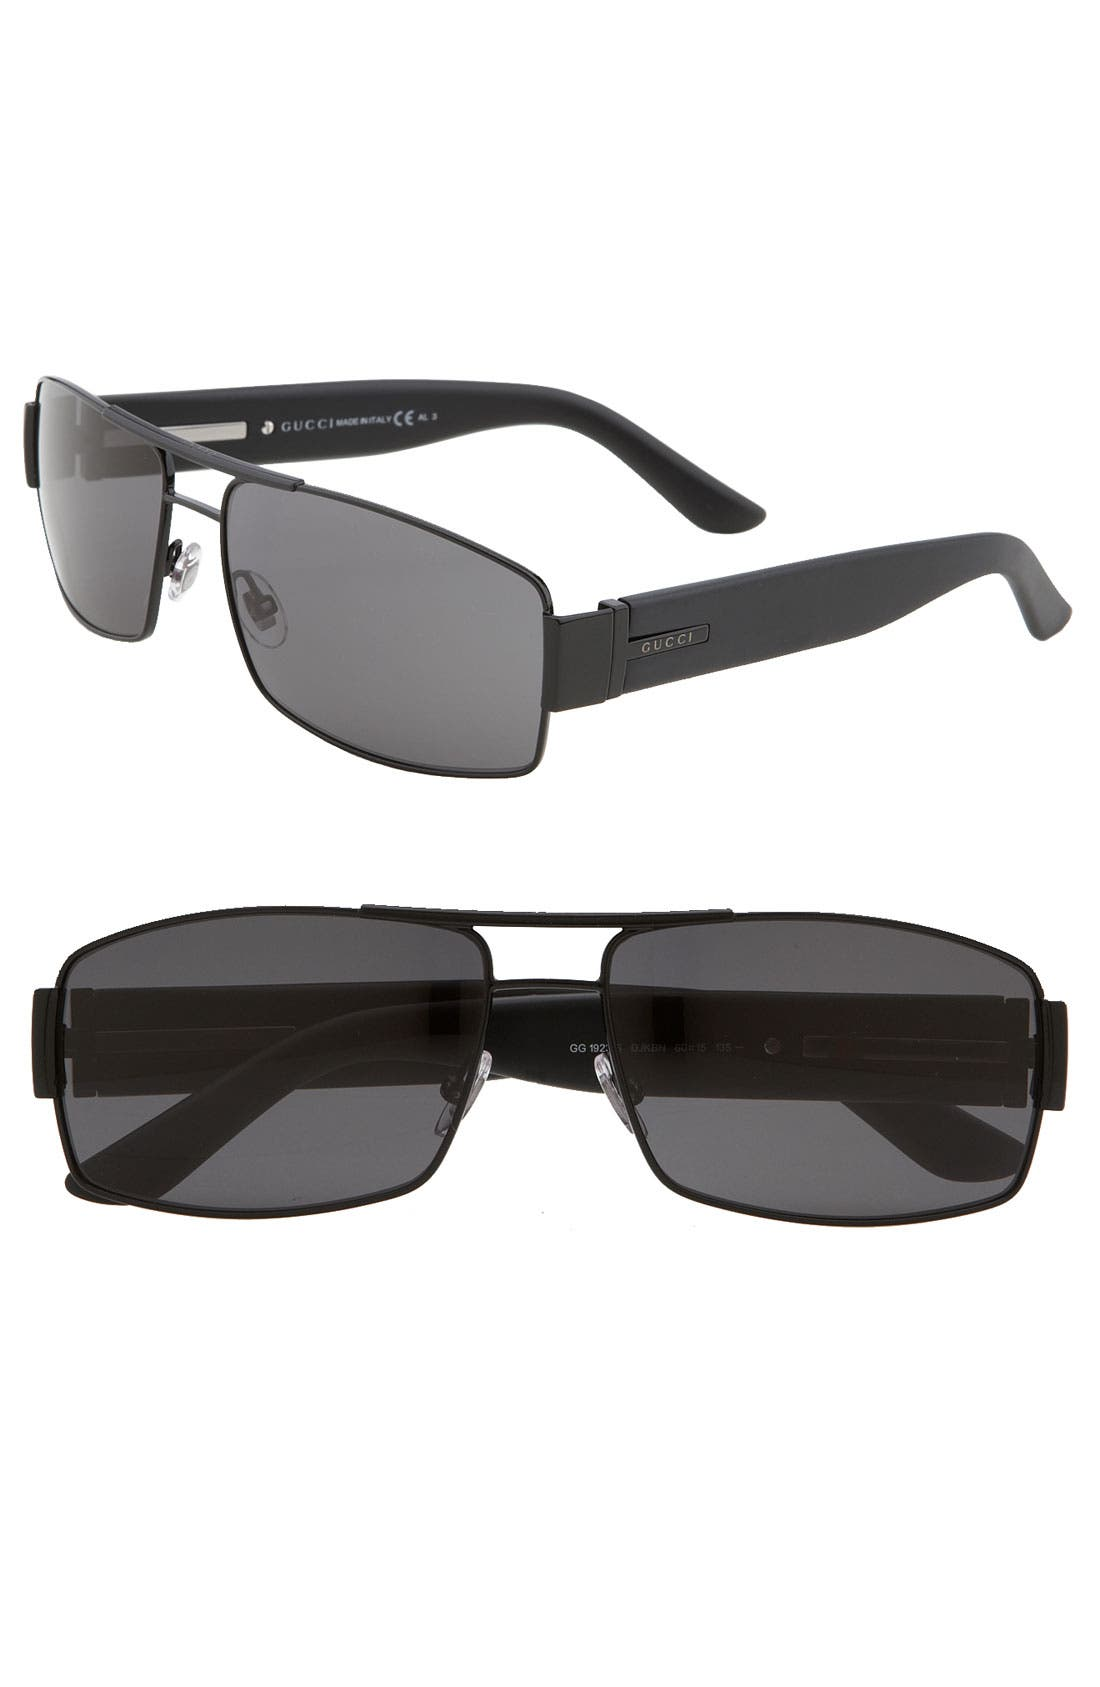 Main Image - Gucci 60mm Stainless Steel Sunglasses